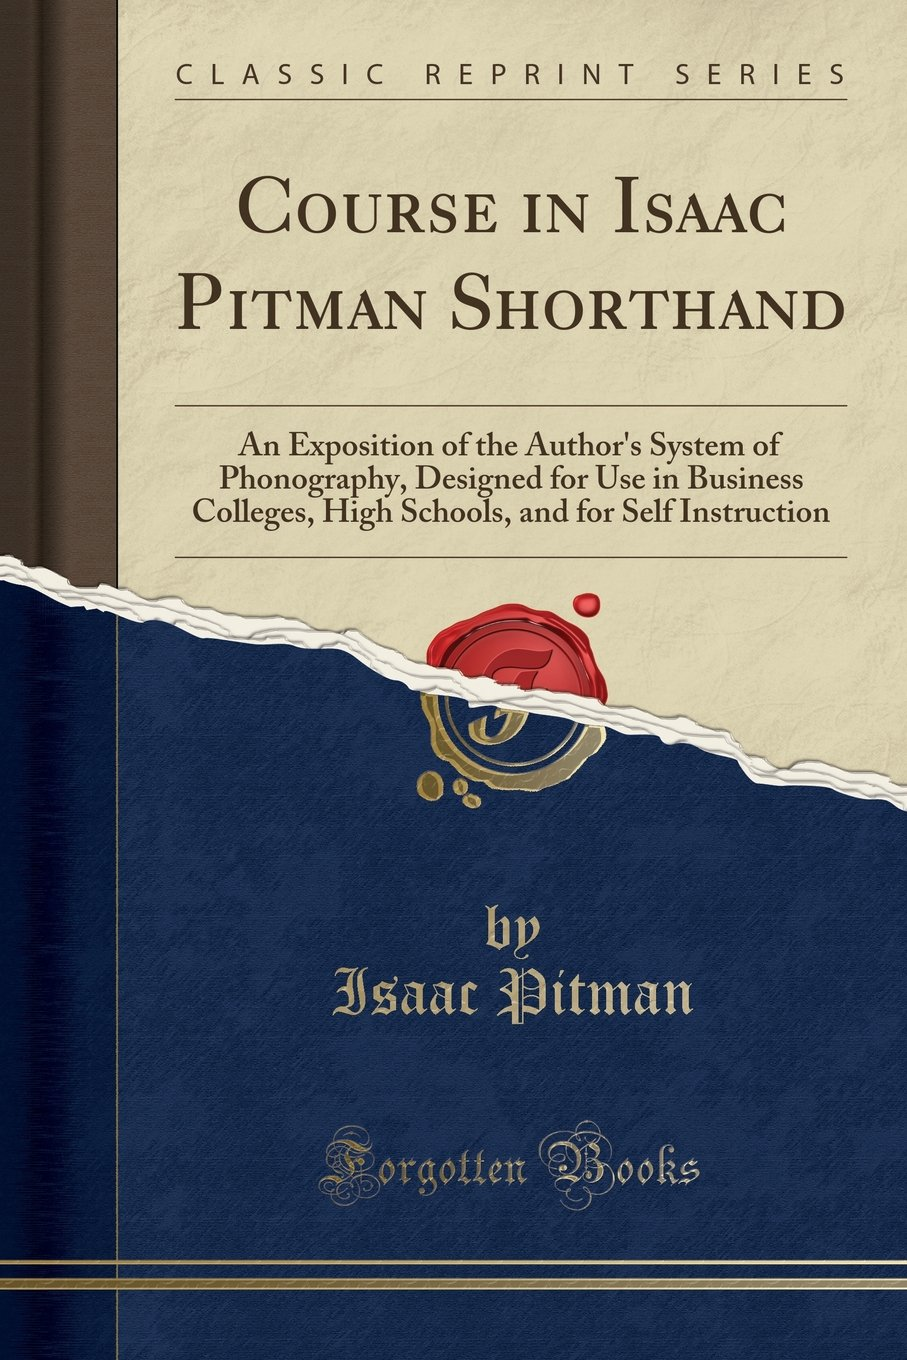 Read Online Course in Isaac Pitman Shorthand: An Exposition of the Author's System of Phonography, Designed for Use in Business Colleges, High Schools, and for Self Instruction (Classic Reprint) ebook